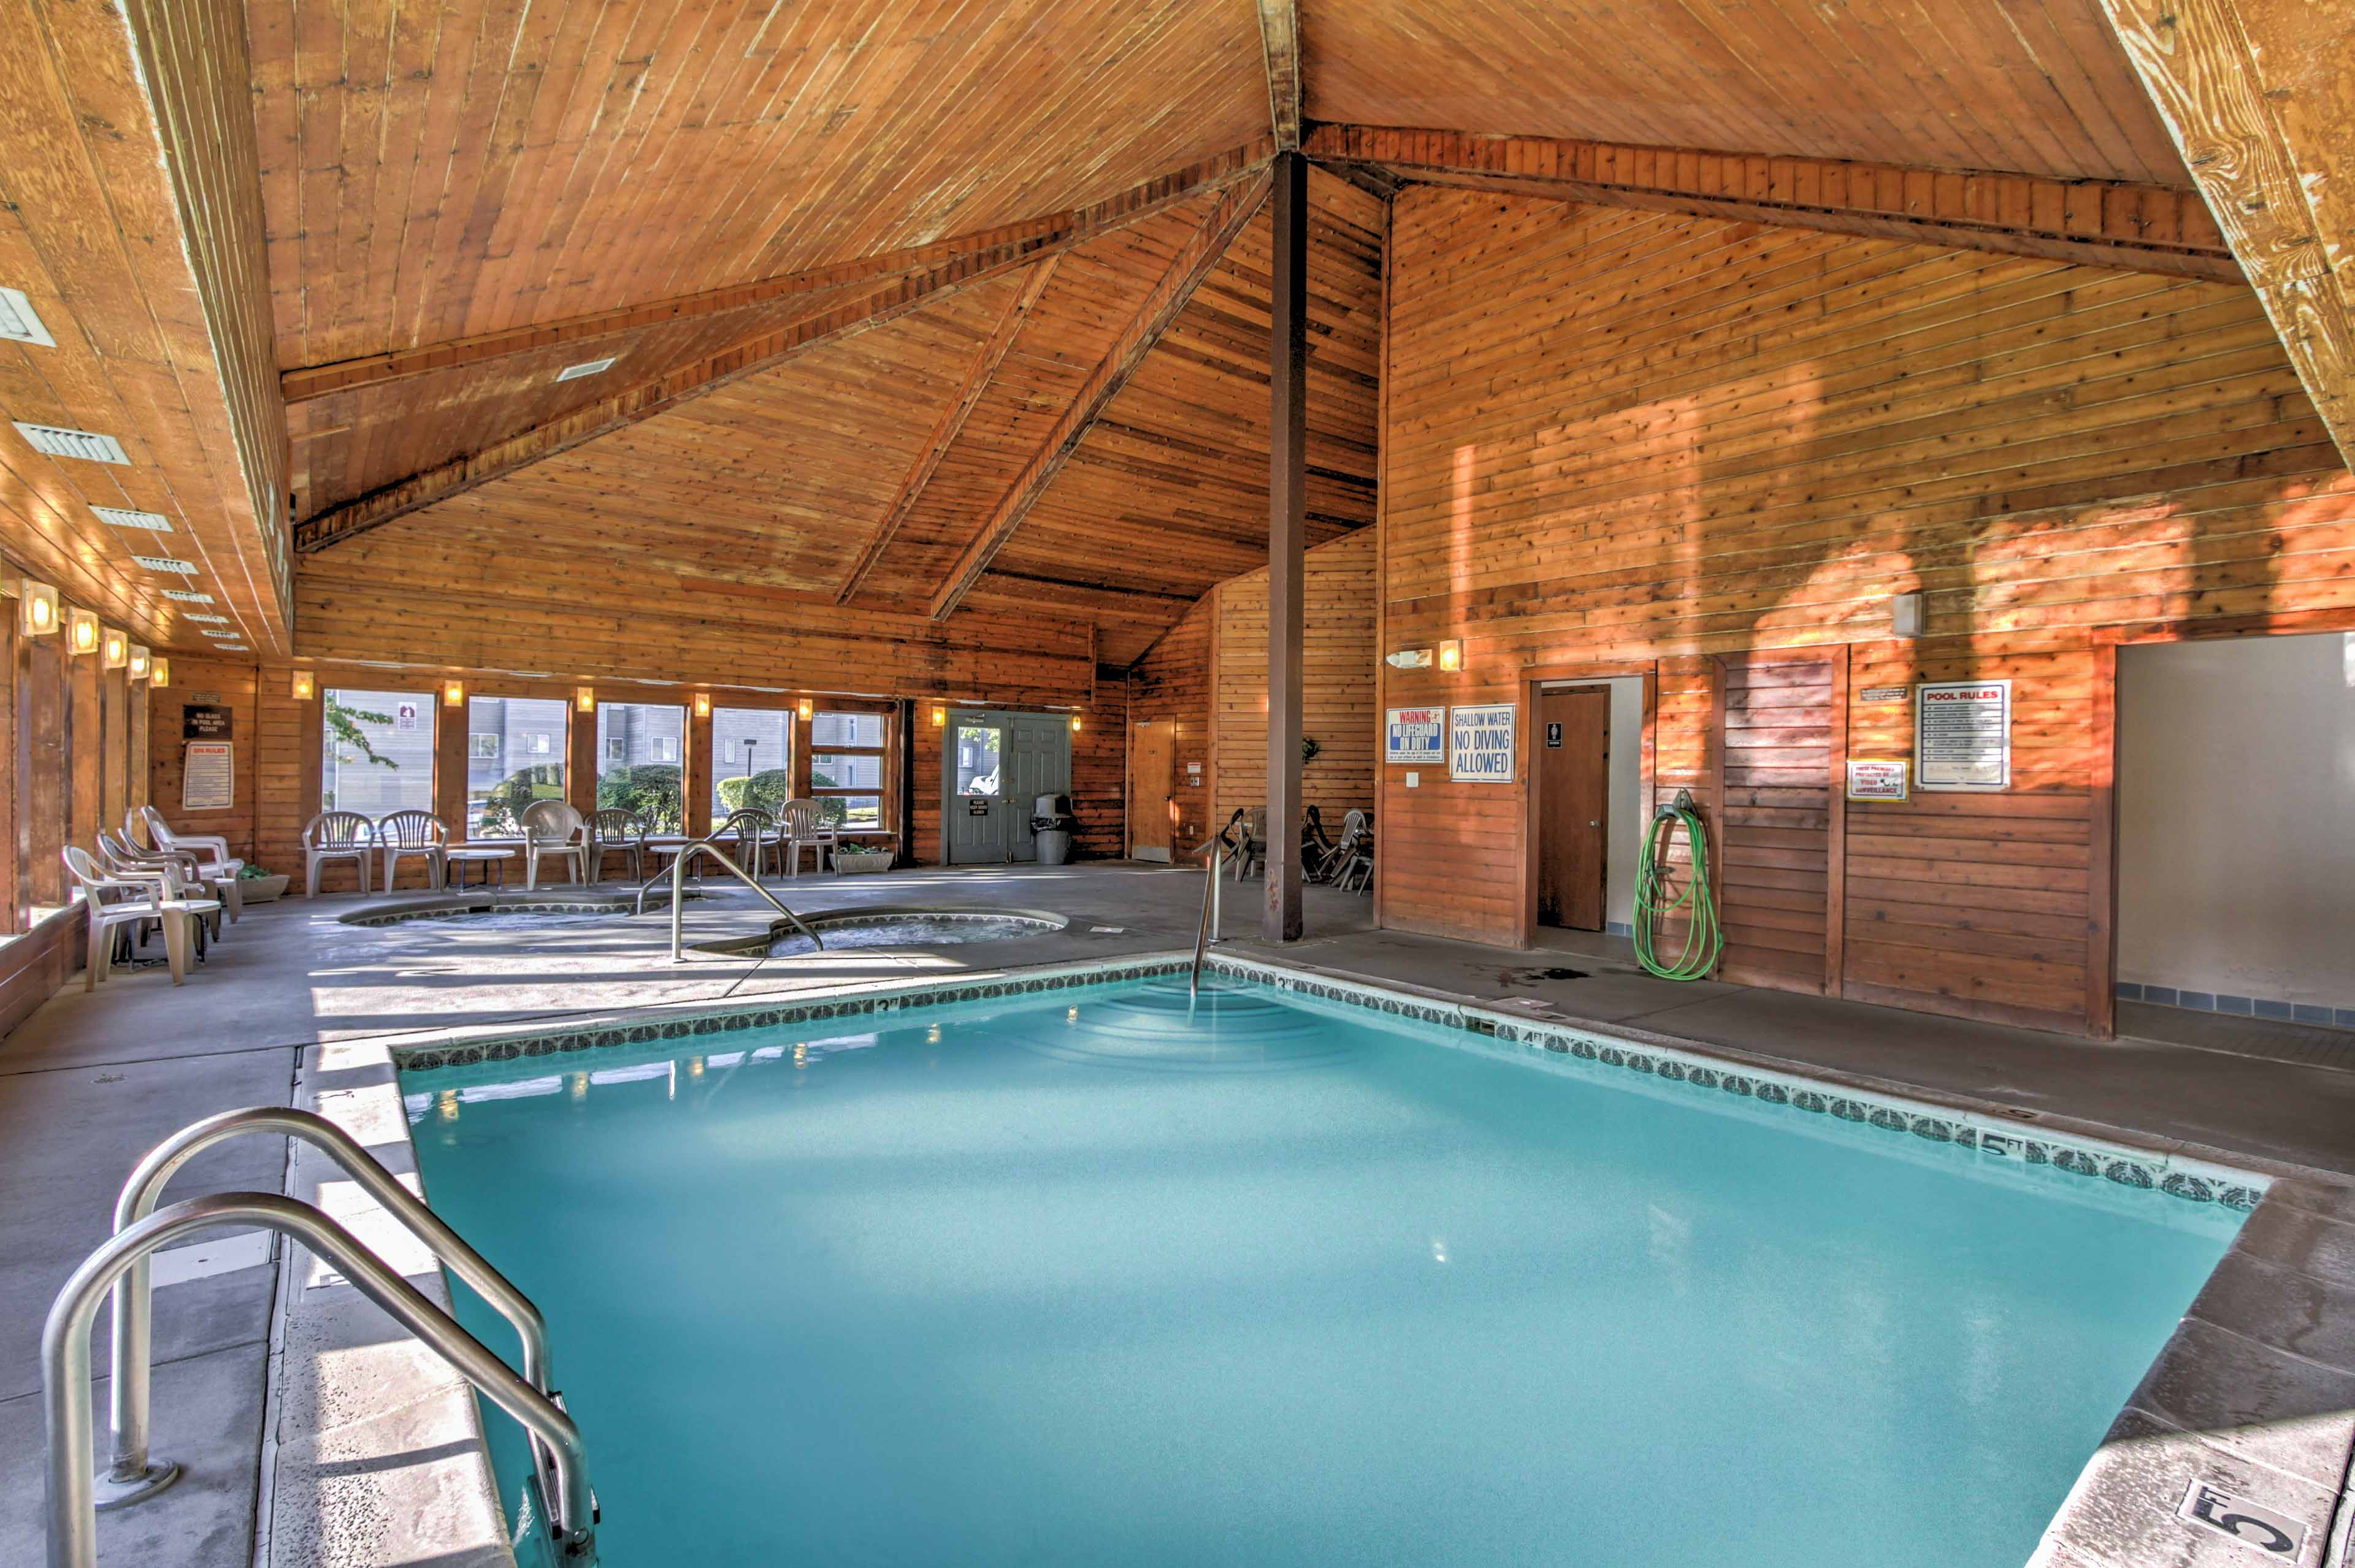 This condo grants you access to community pools and other amenities.